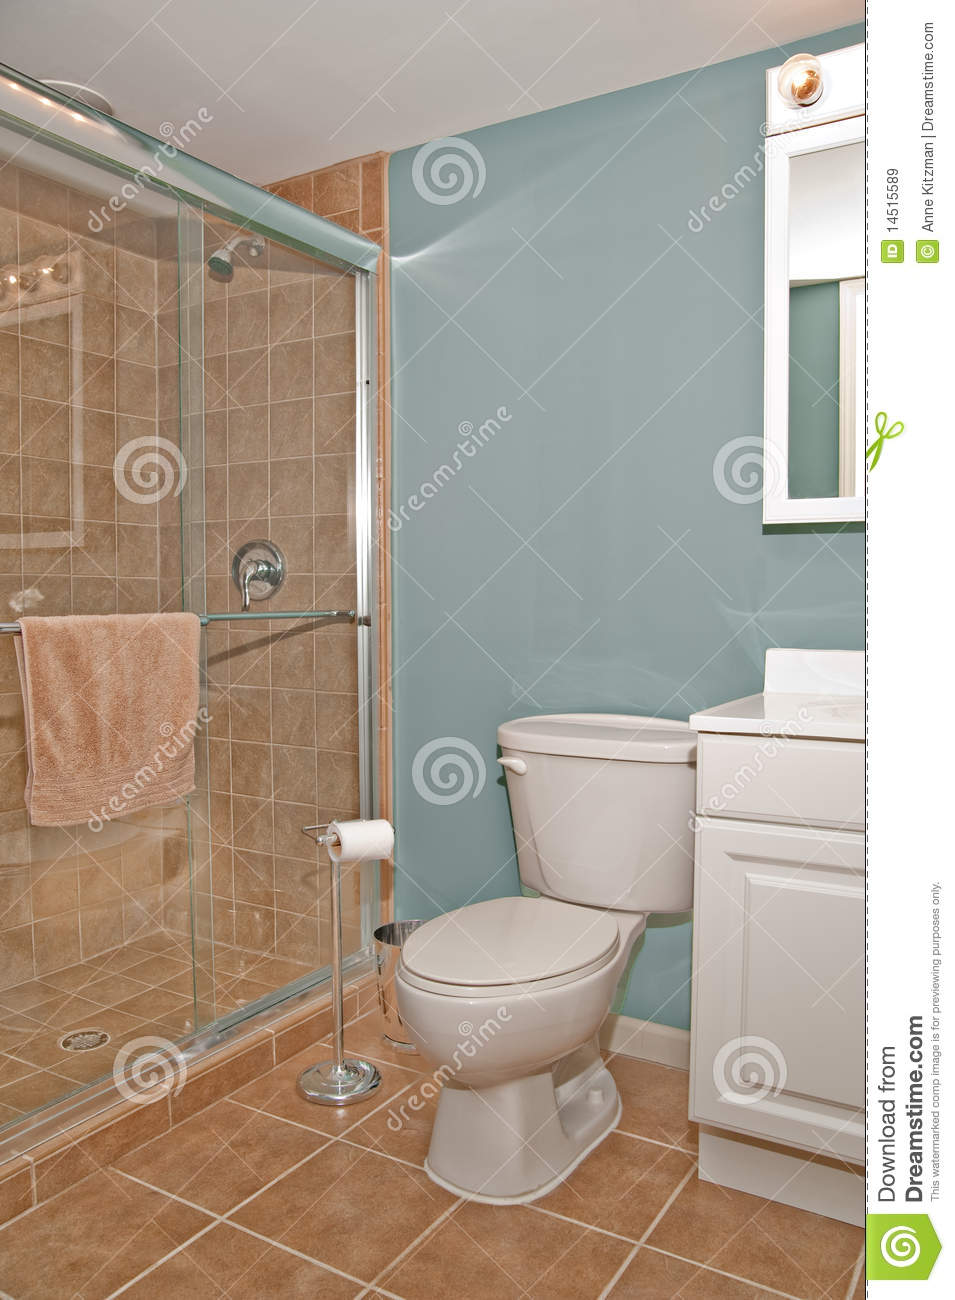 Bathroom Toilet And Shower Stall Stock Image - Image of interior ...